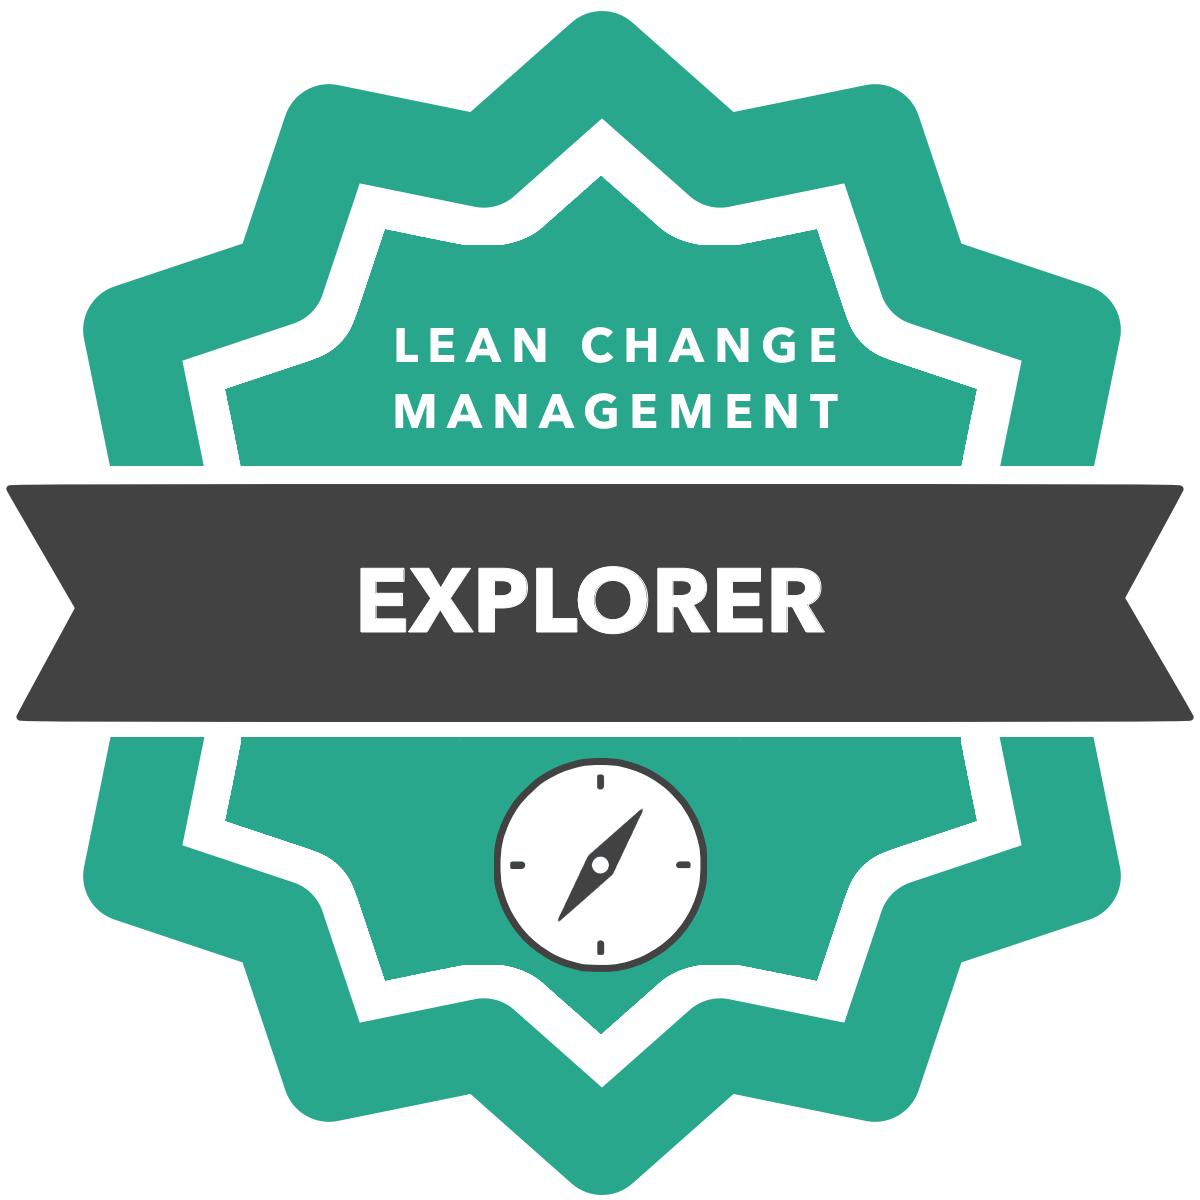 Lean Change Agent - Explorer